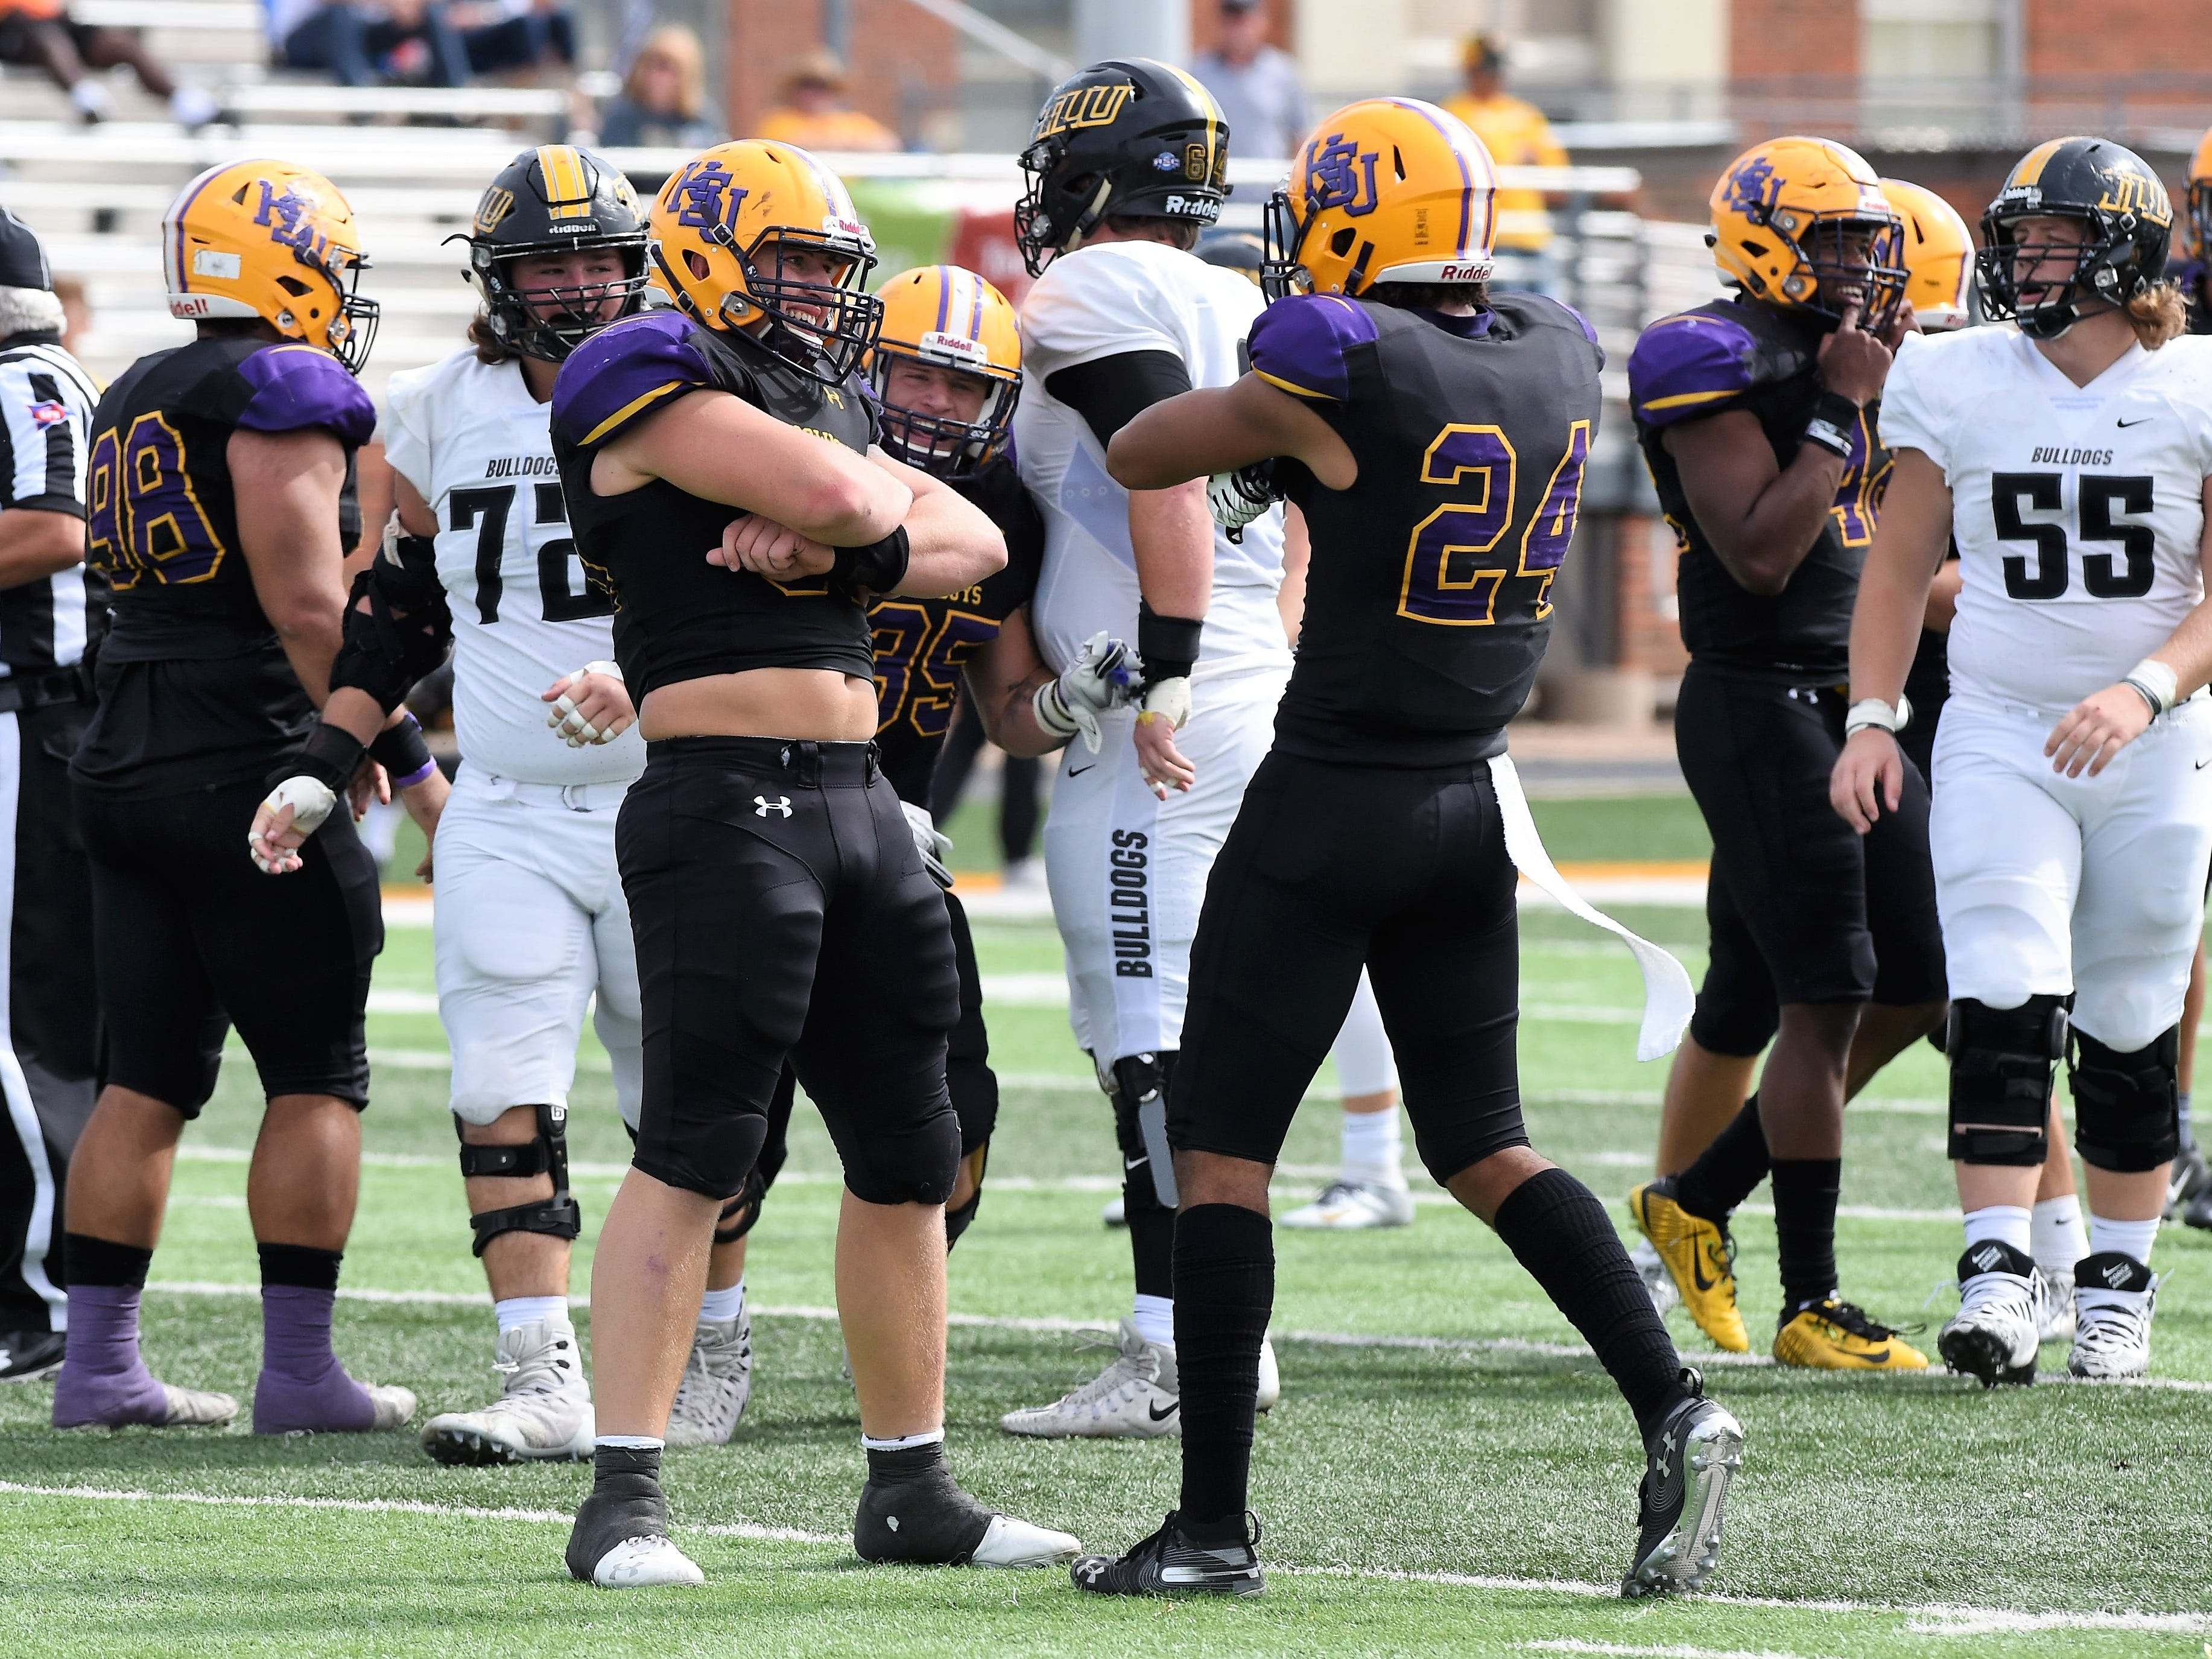 Hardin-Simmons' Hunter Creasey (96) and Dedrick Strambler (24) celebrate after a sack against Texas Lutheran at Shelton Stadium on Saturday, Oct. 20, 2018.